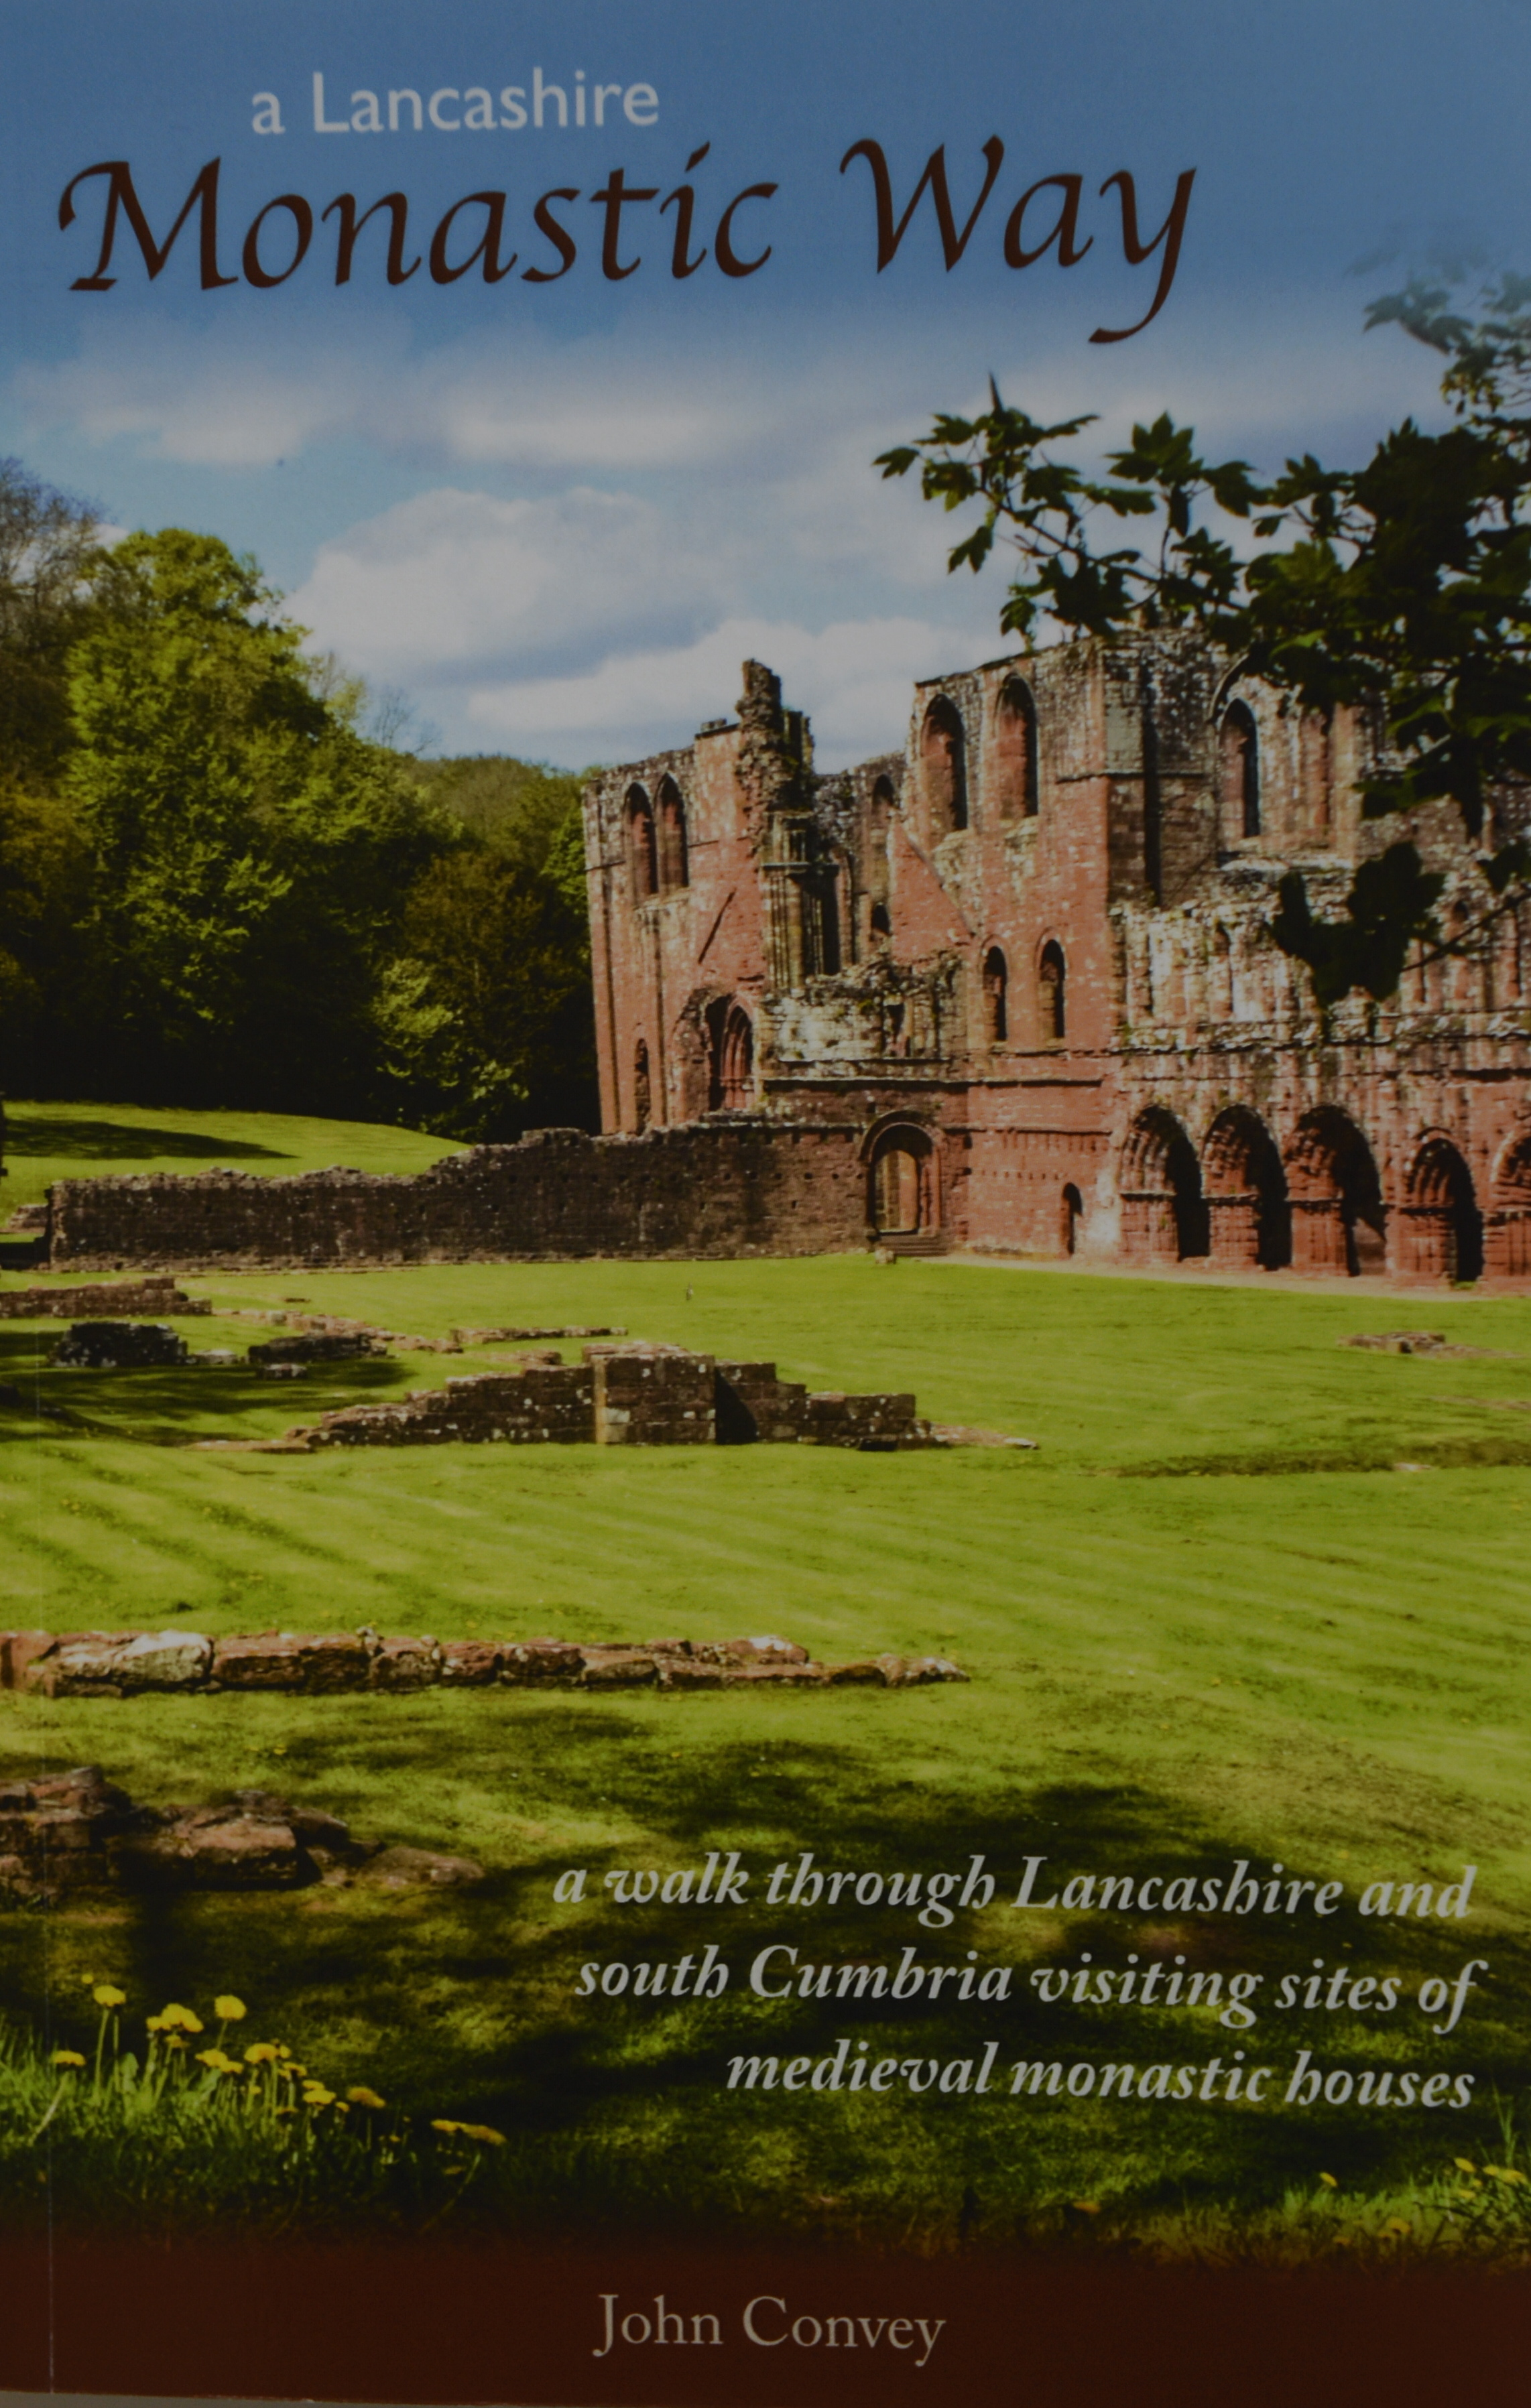 A Lancashire Monastic Way by John Convey